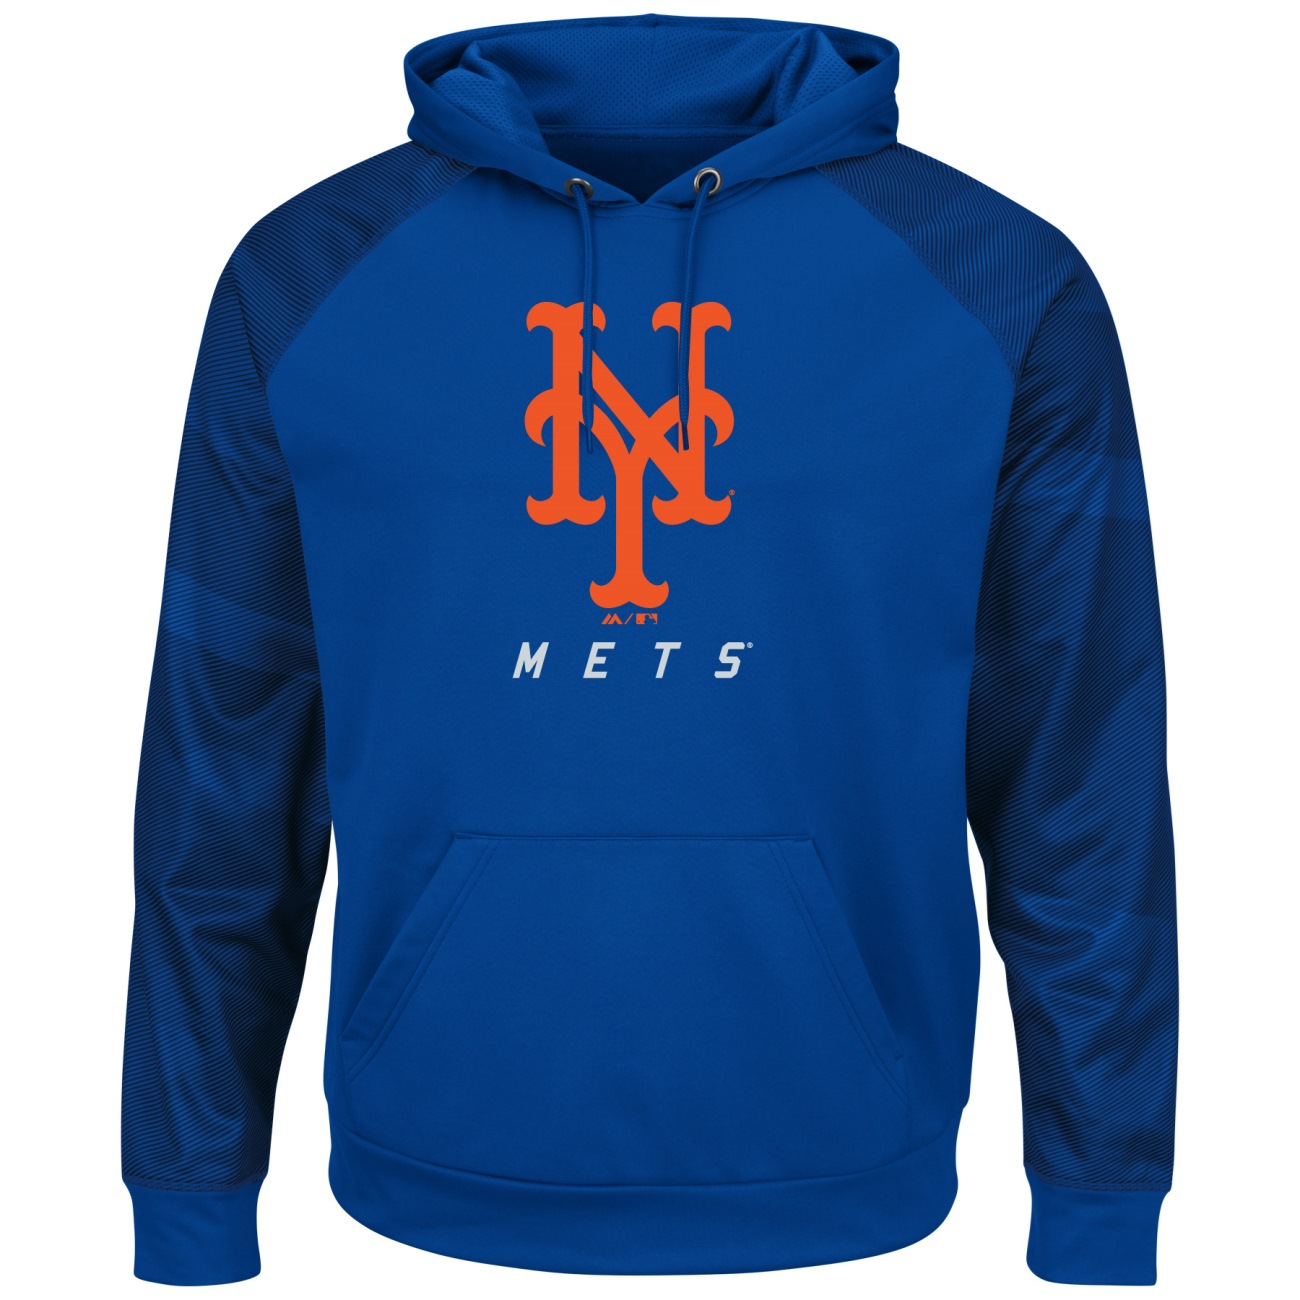 """New York Mets Majestic MLB """"Armor 2"""" Men's Pullover Hooded Sweatshirt by MAJESTIC LSG"""